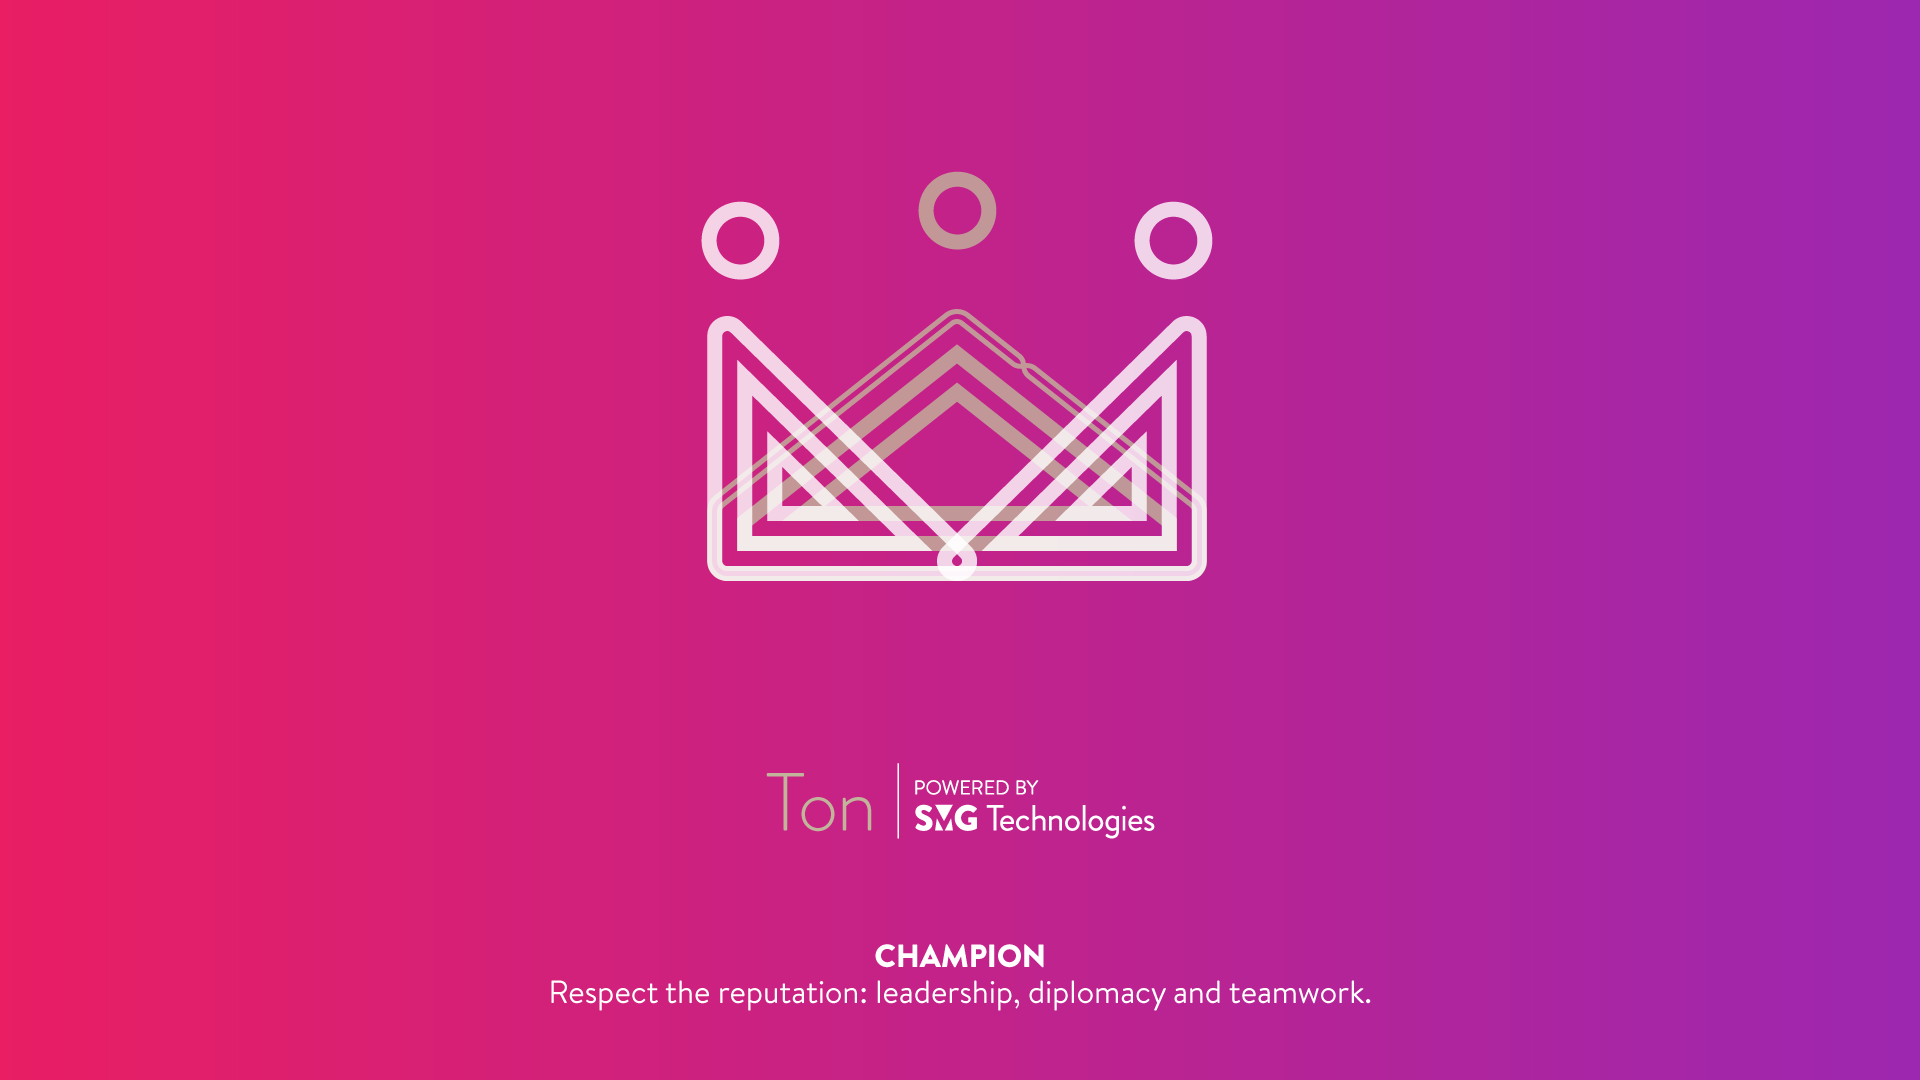 SMG-Technologies-icon-champion.png